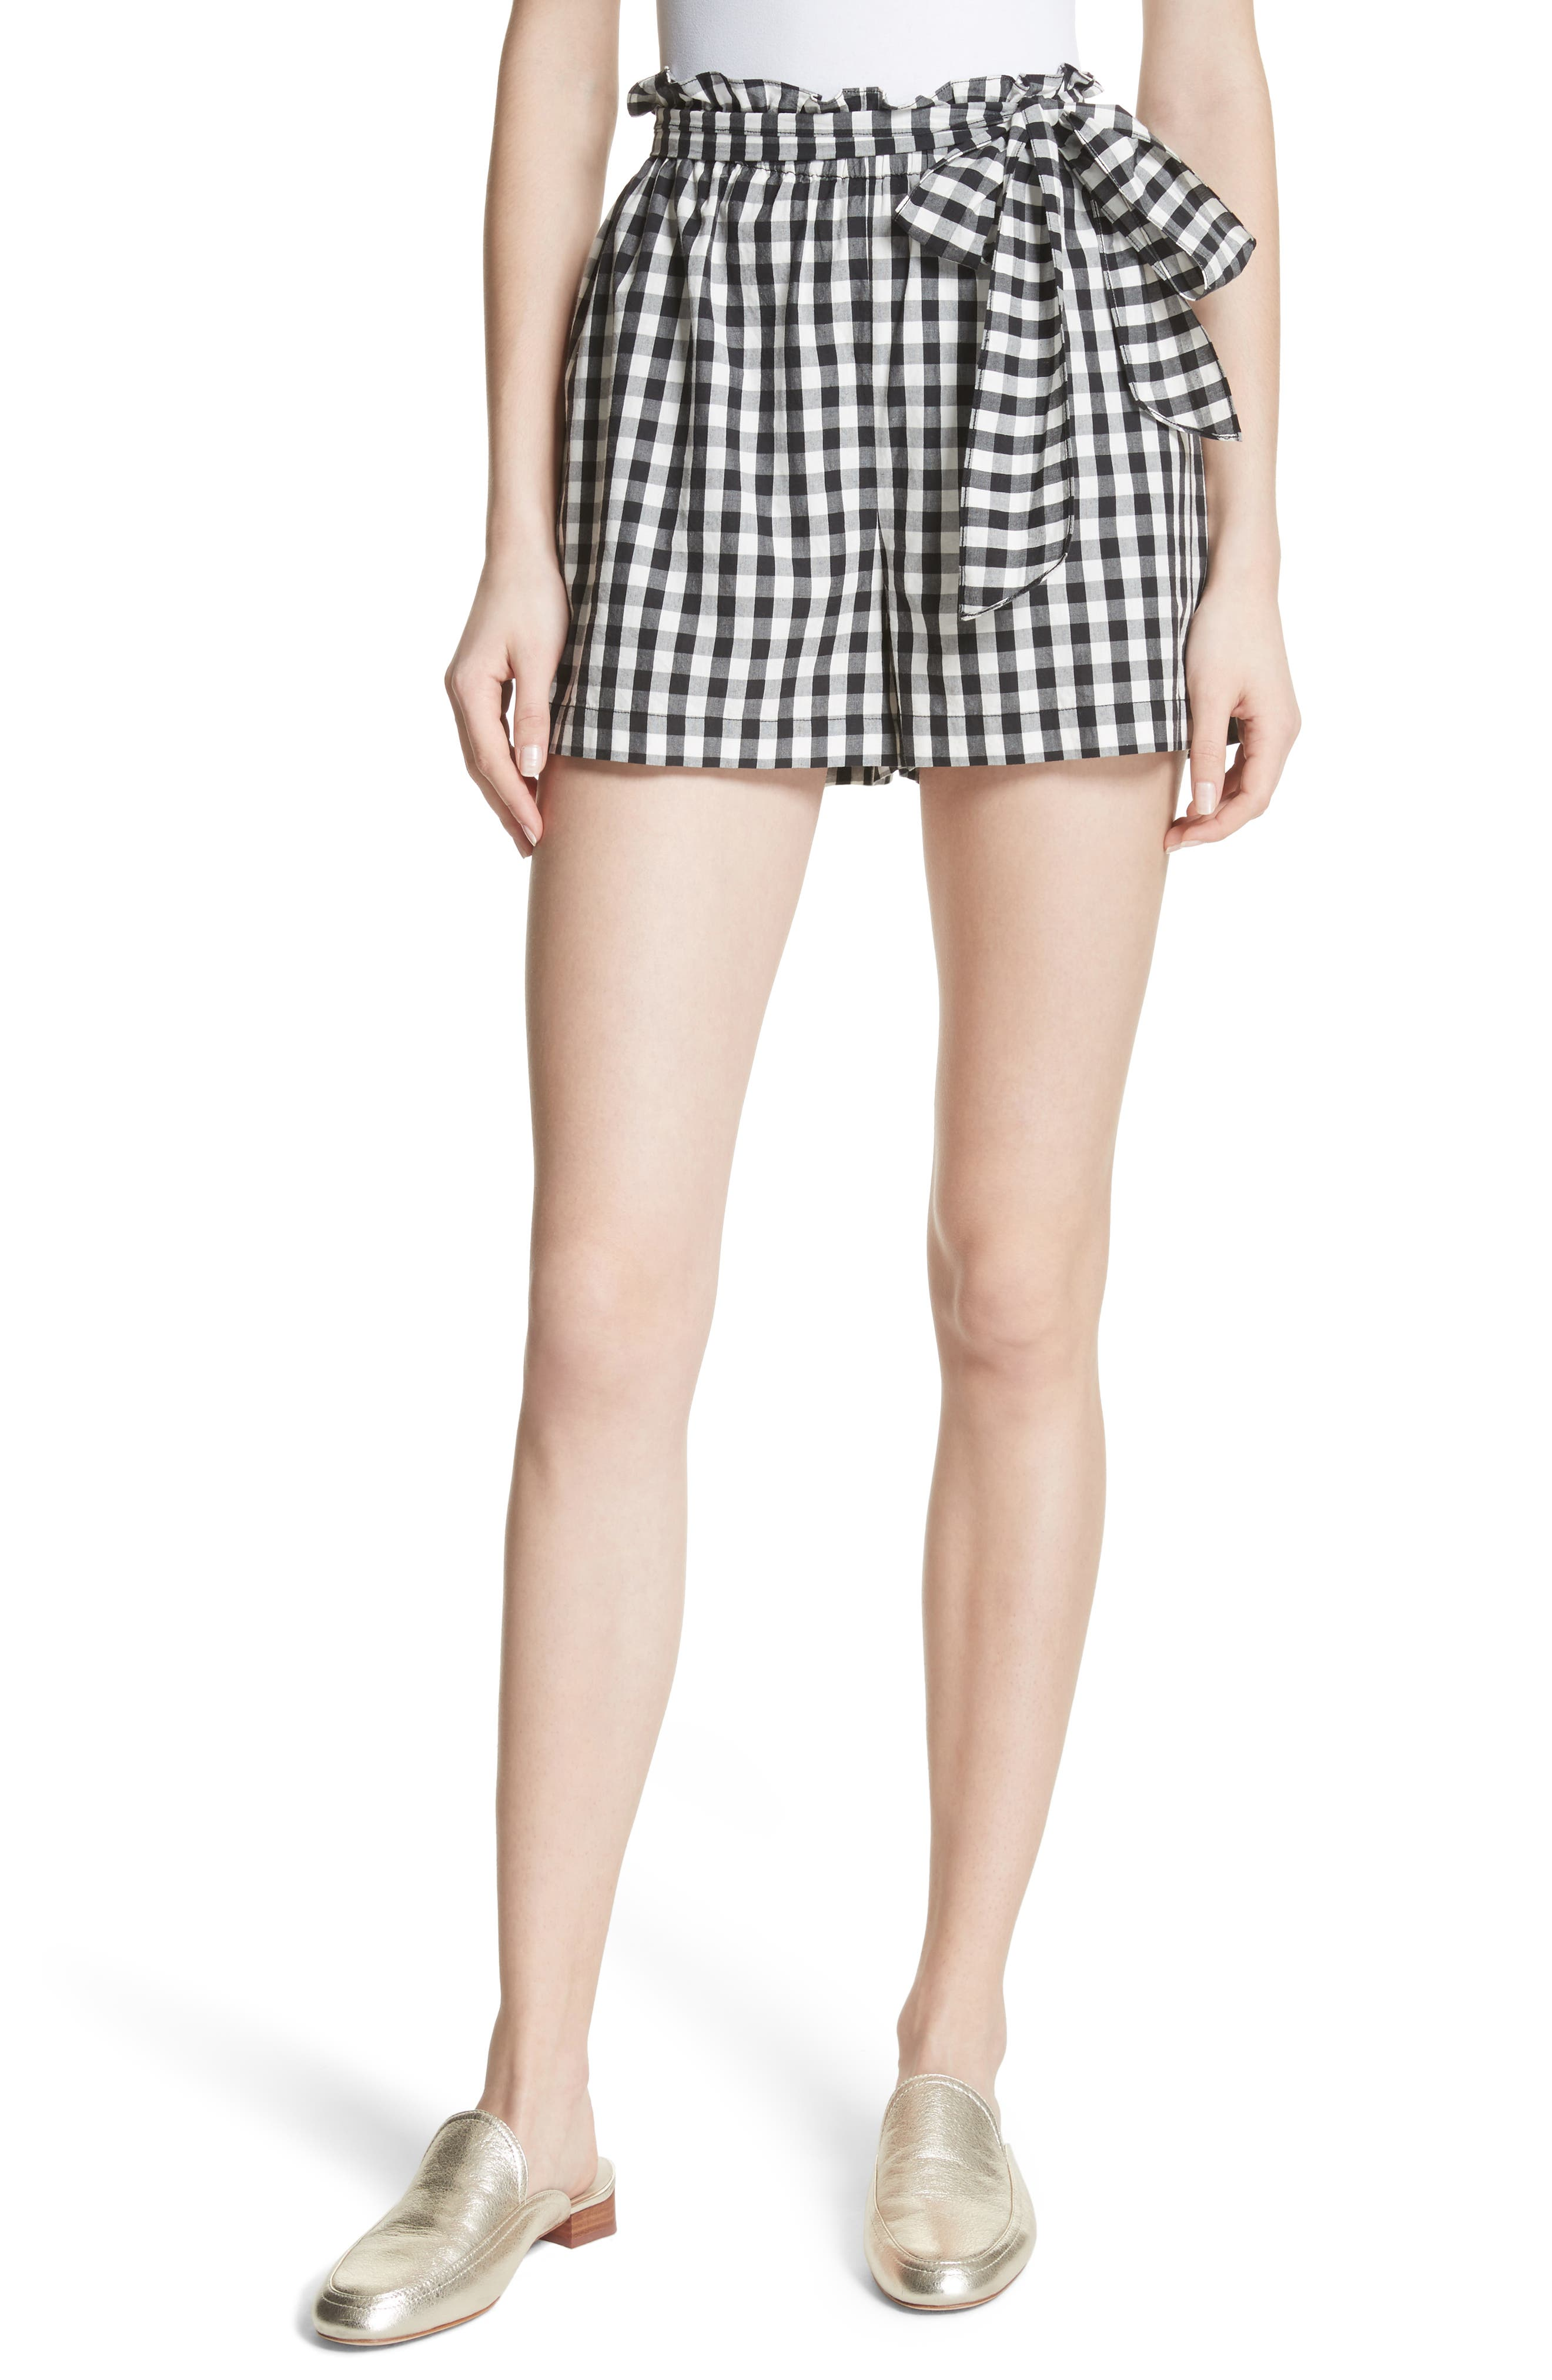 JOIE Cleantha Gingham Cotton Shorts, Main, color, 001